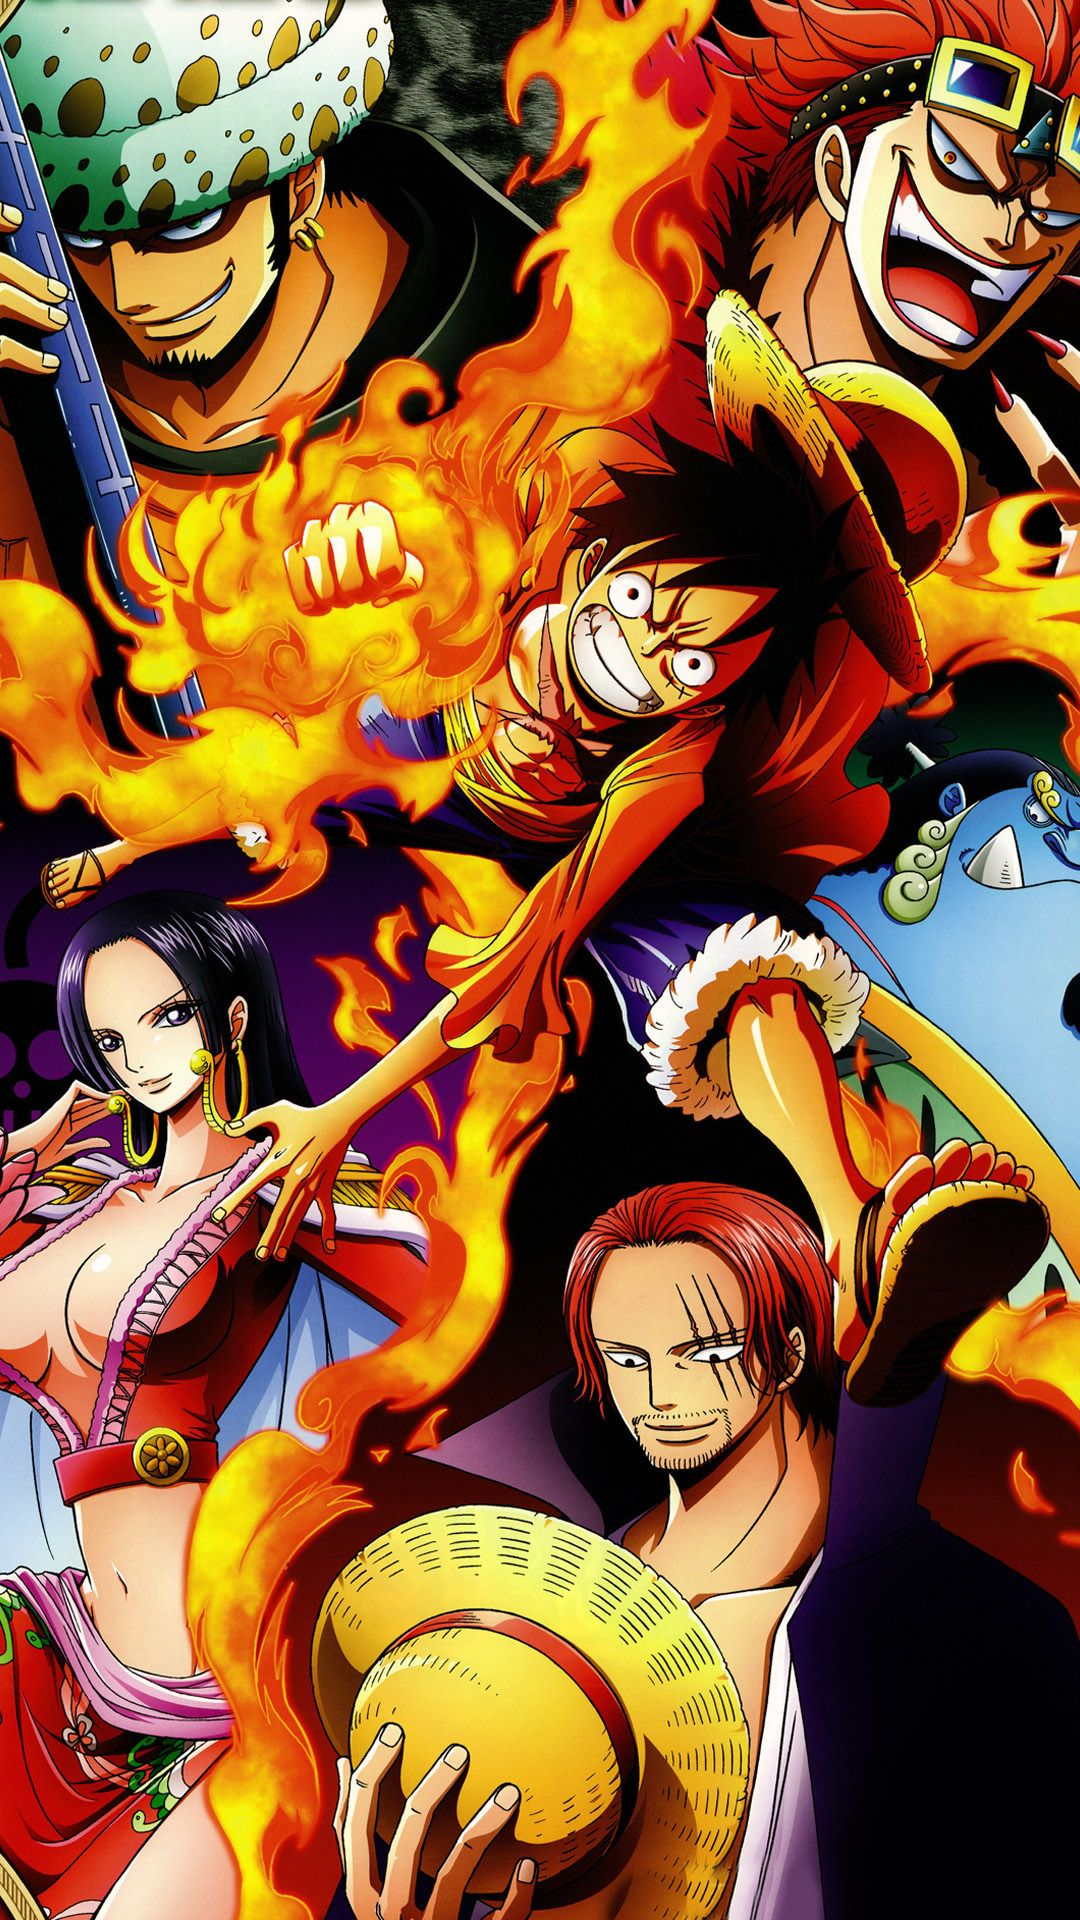 One Piece Anime Wallpaper One Piece Wallpaper Iphone One Piece Anime One Piece Manga